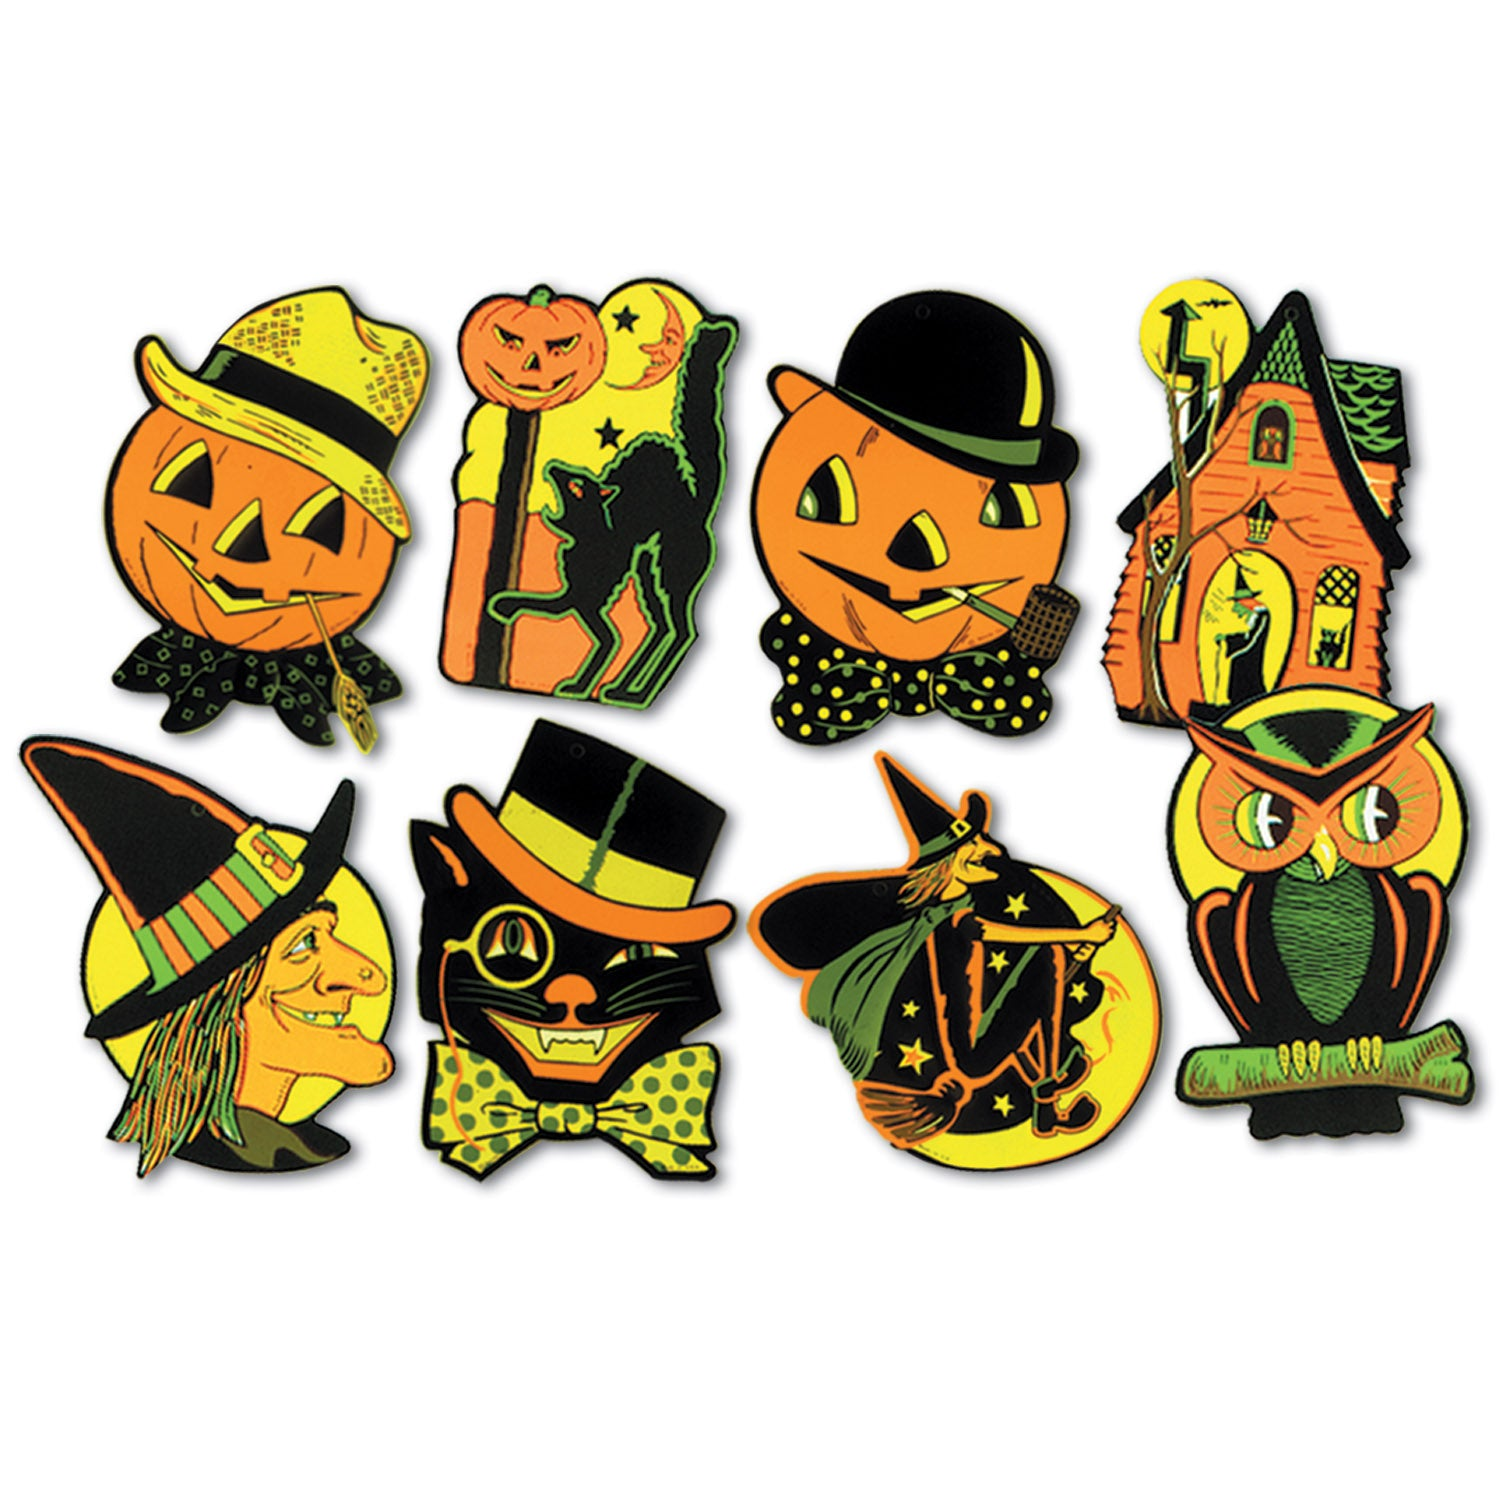 Case of 96 Beistle Halloween Party Cutout Decorations 9 5 Inch